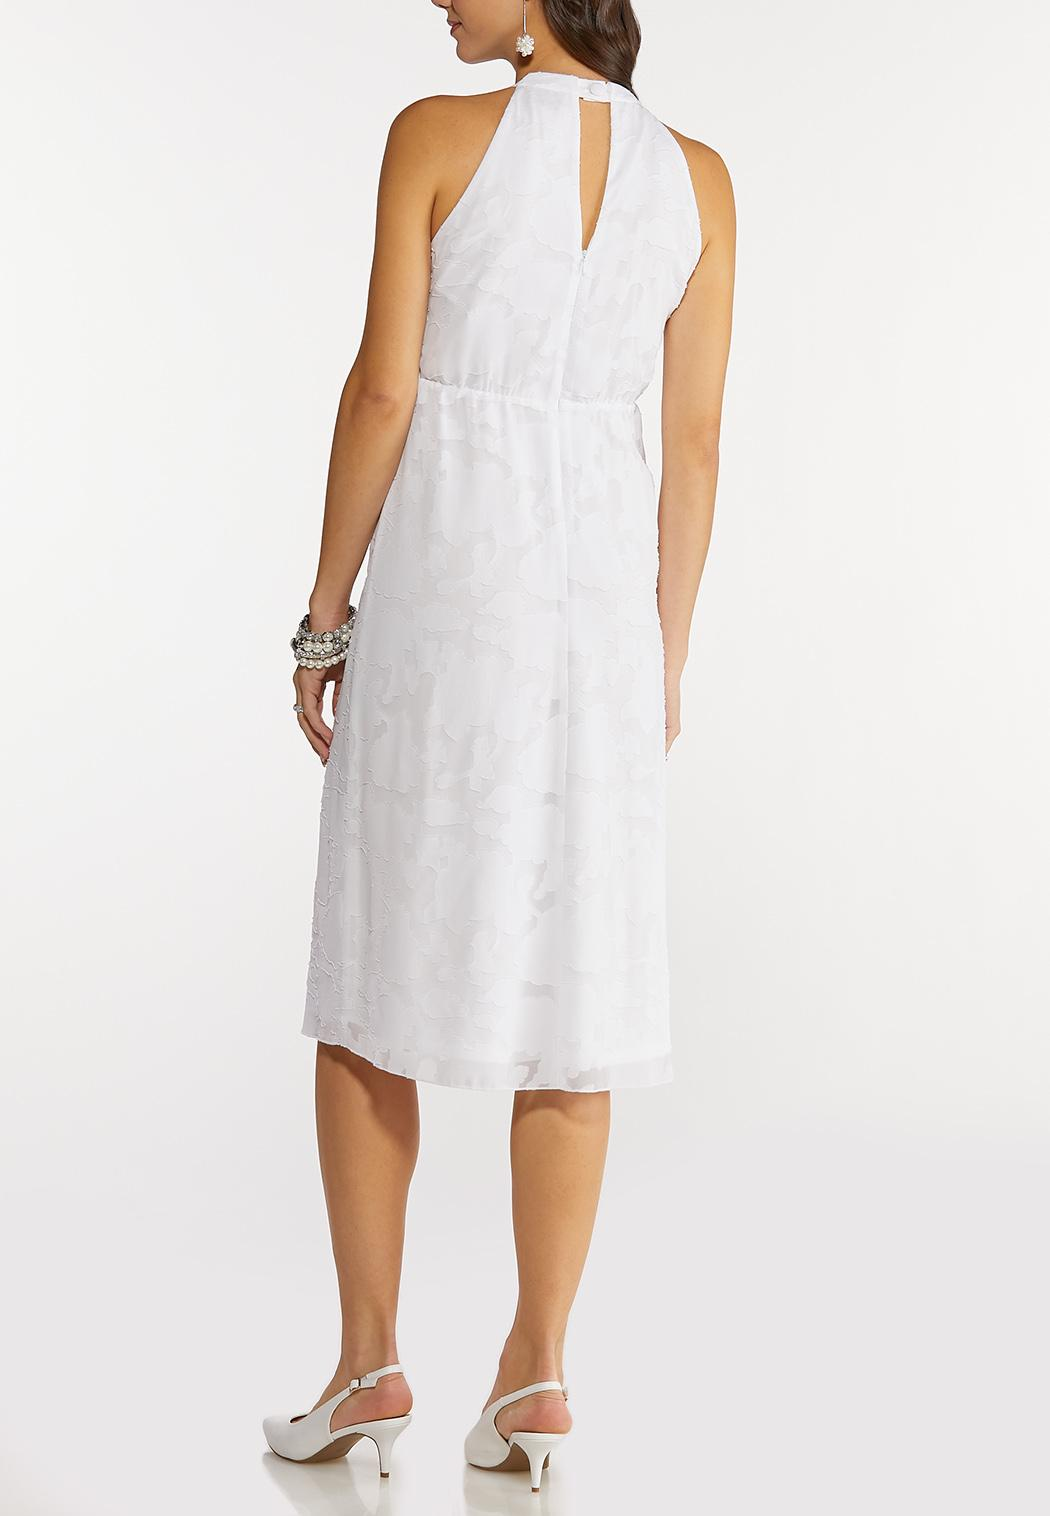 White Jacquard Midi Dress (Item #44149924)